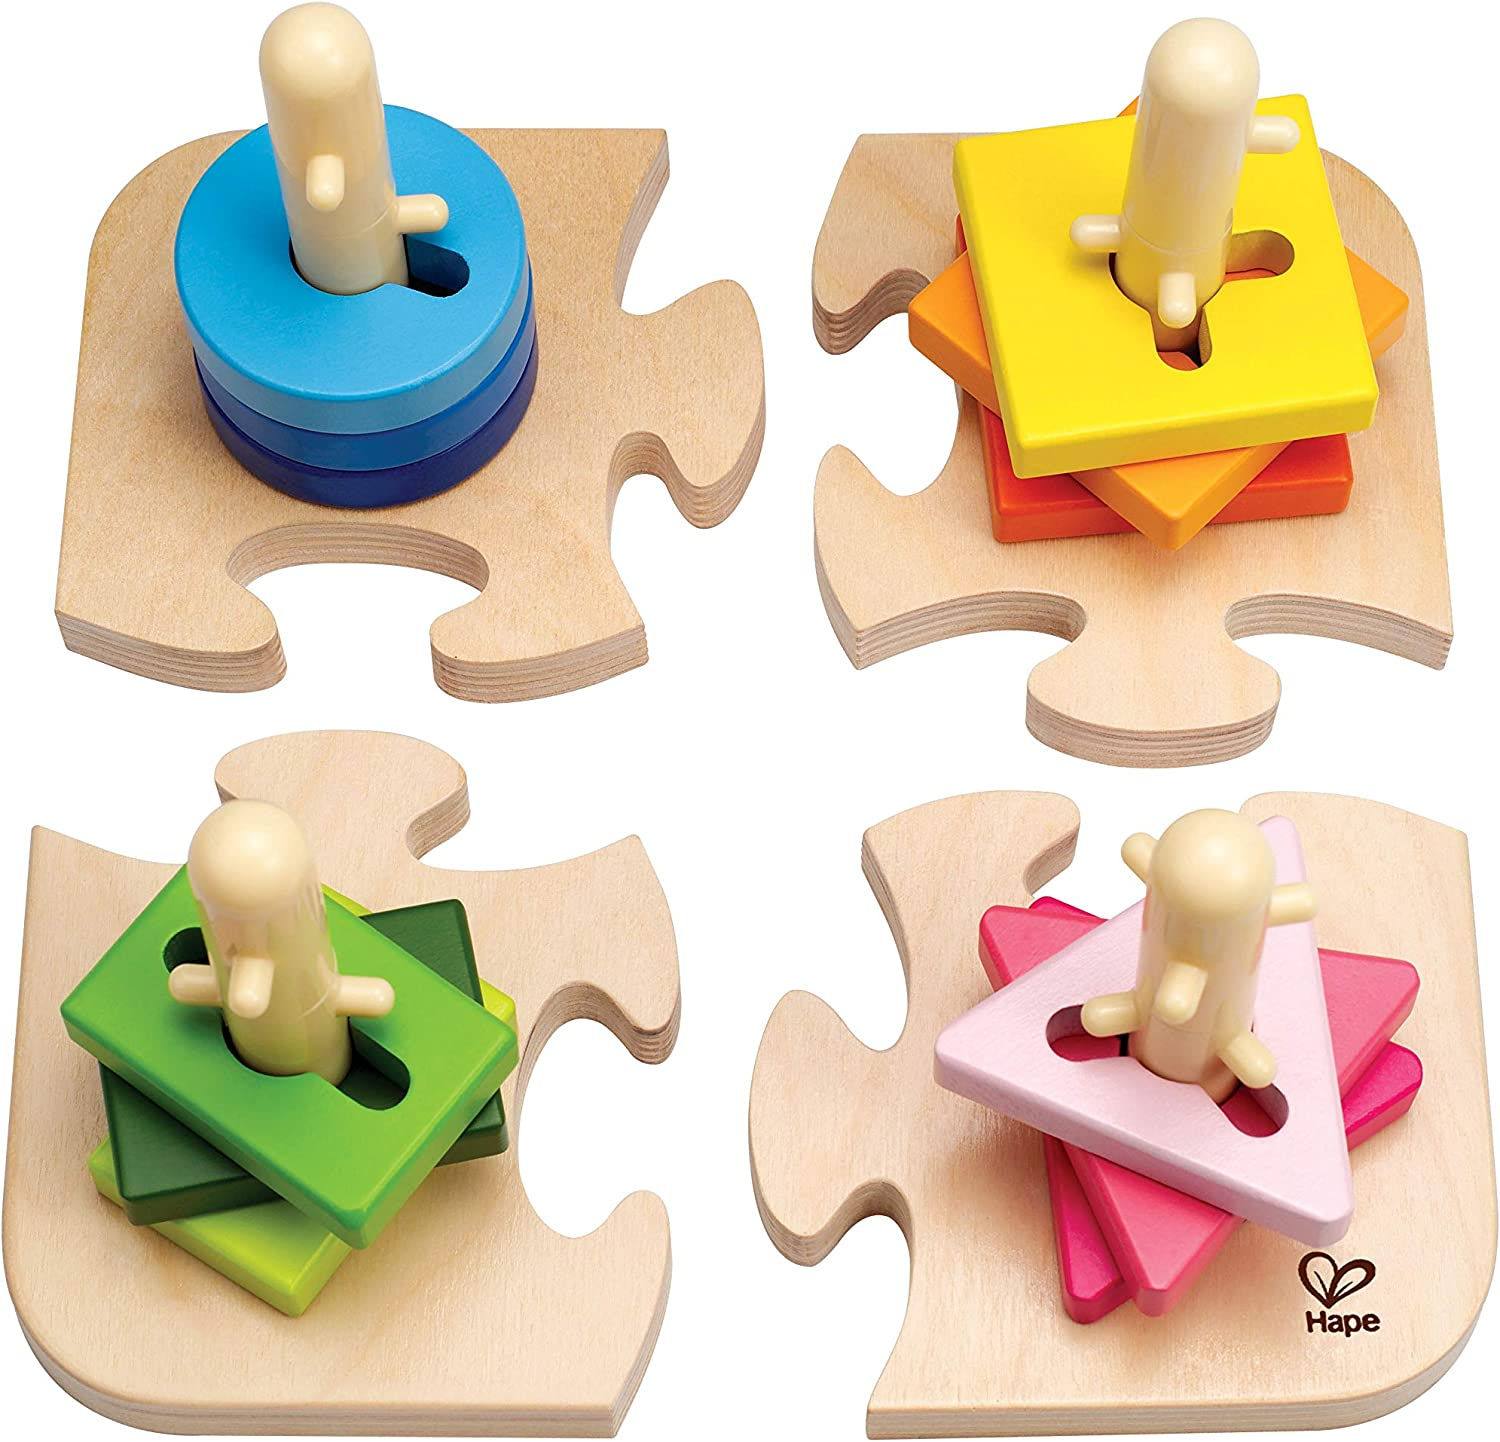 Hape Creative Toddler Wooden Ranking TOP3 Peg Puzzle Max 86% OFF W: 7.8 H: 4.6 L: